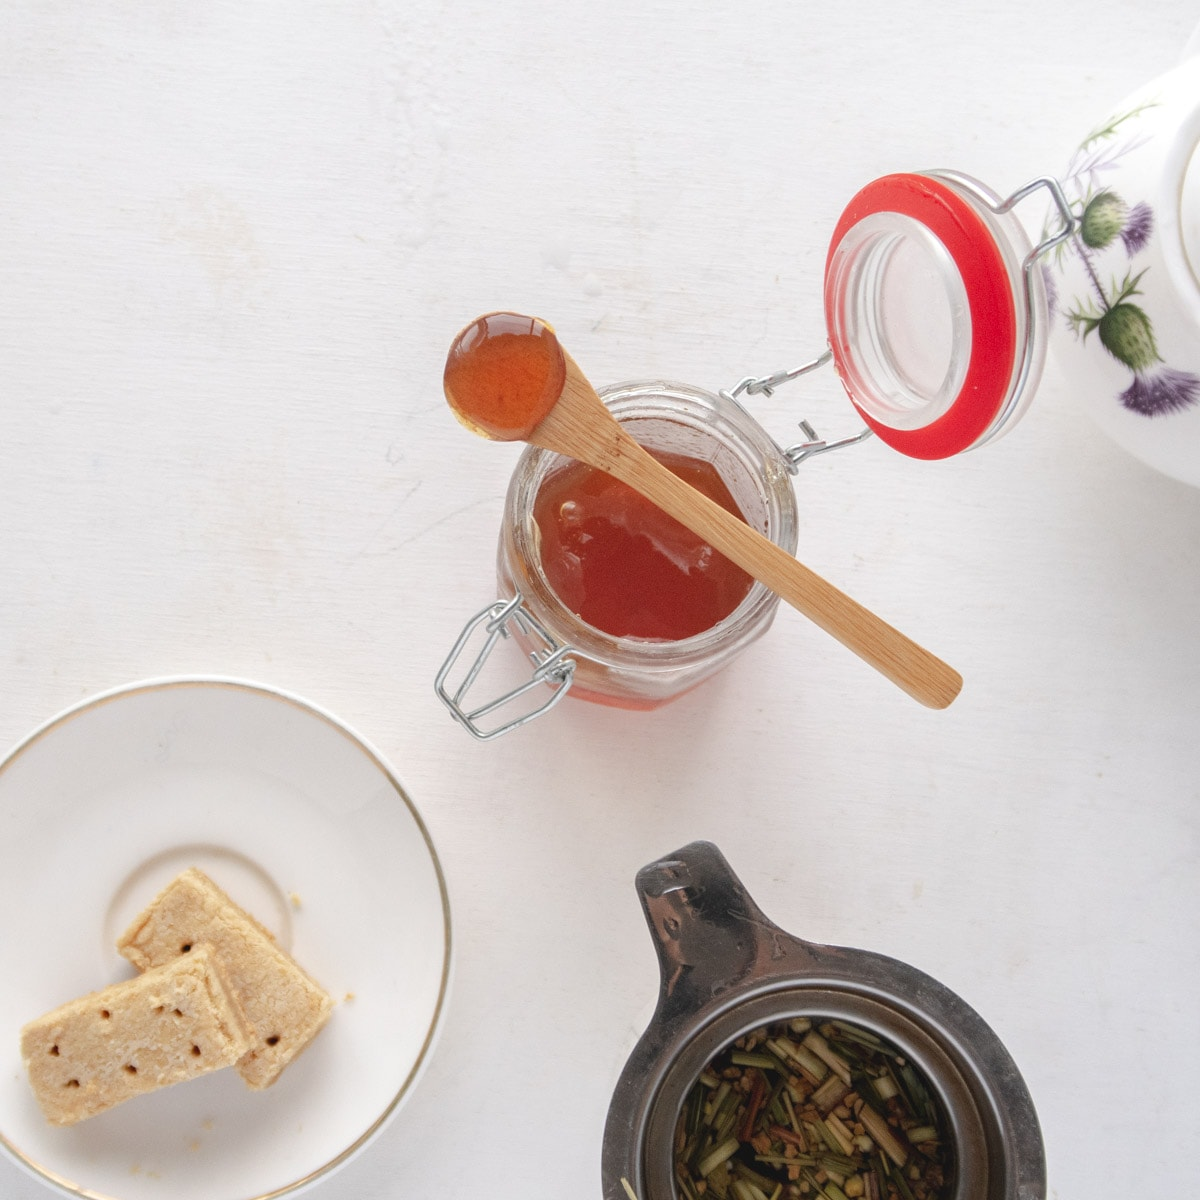 flatlay of a jar of honey, some shortbreads and some tea